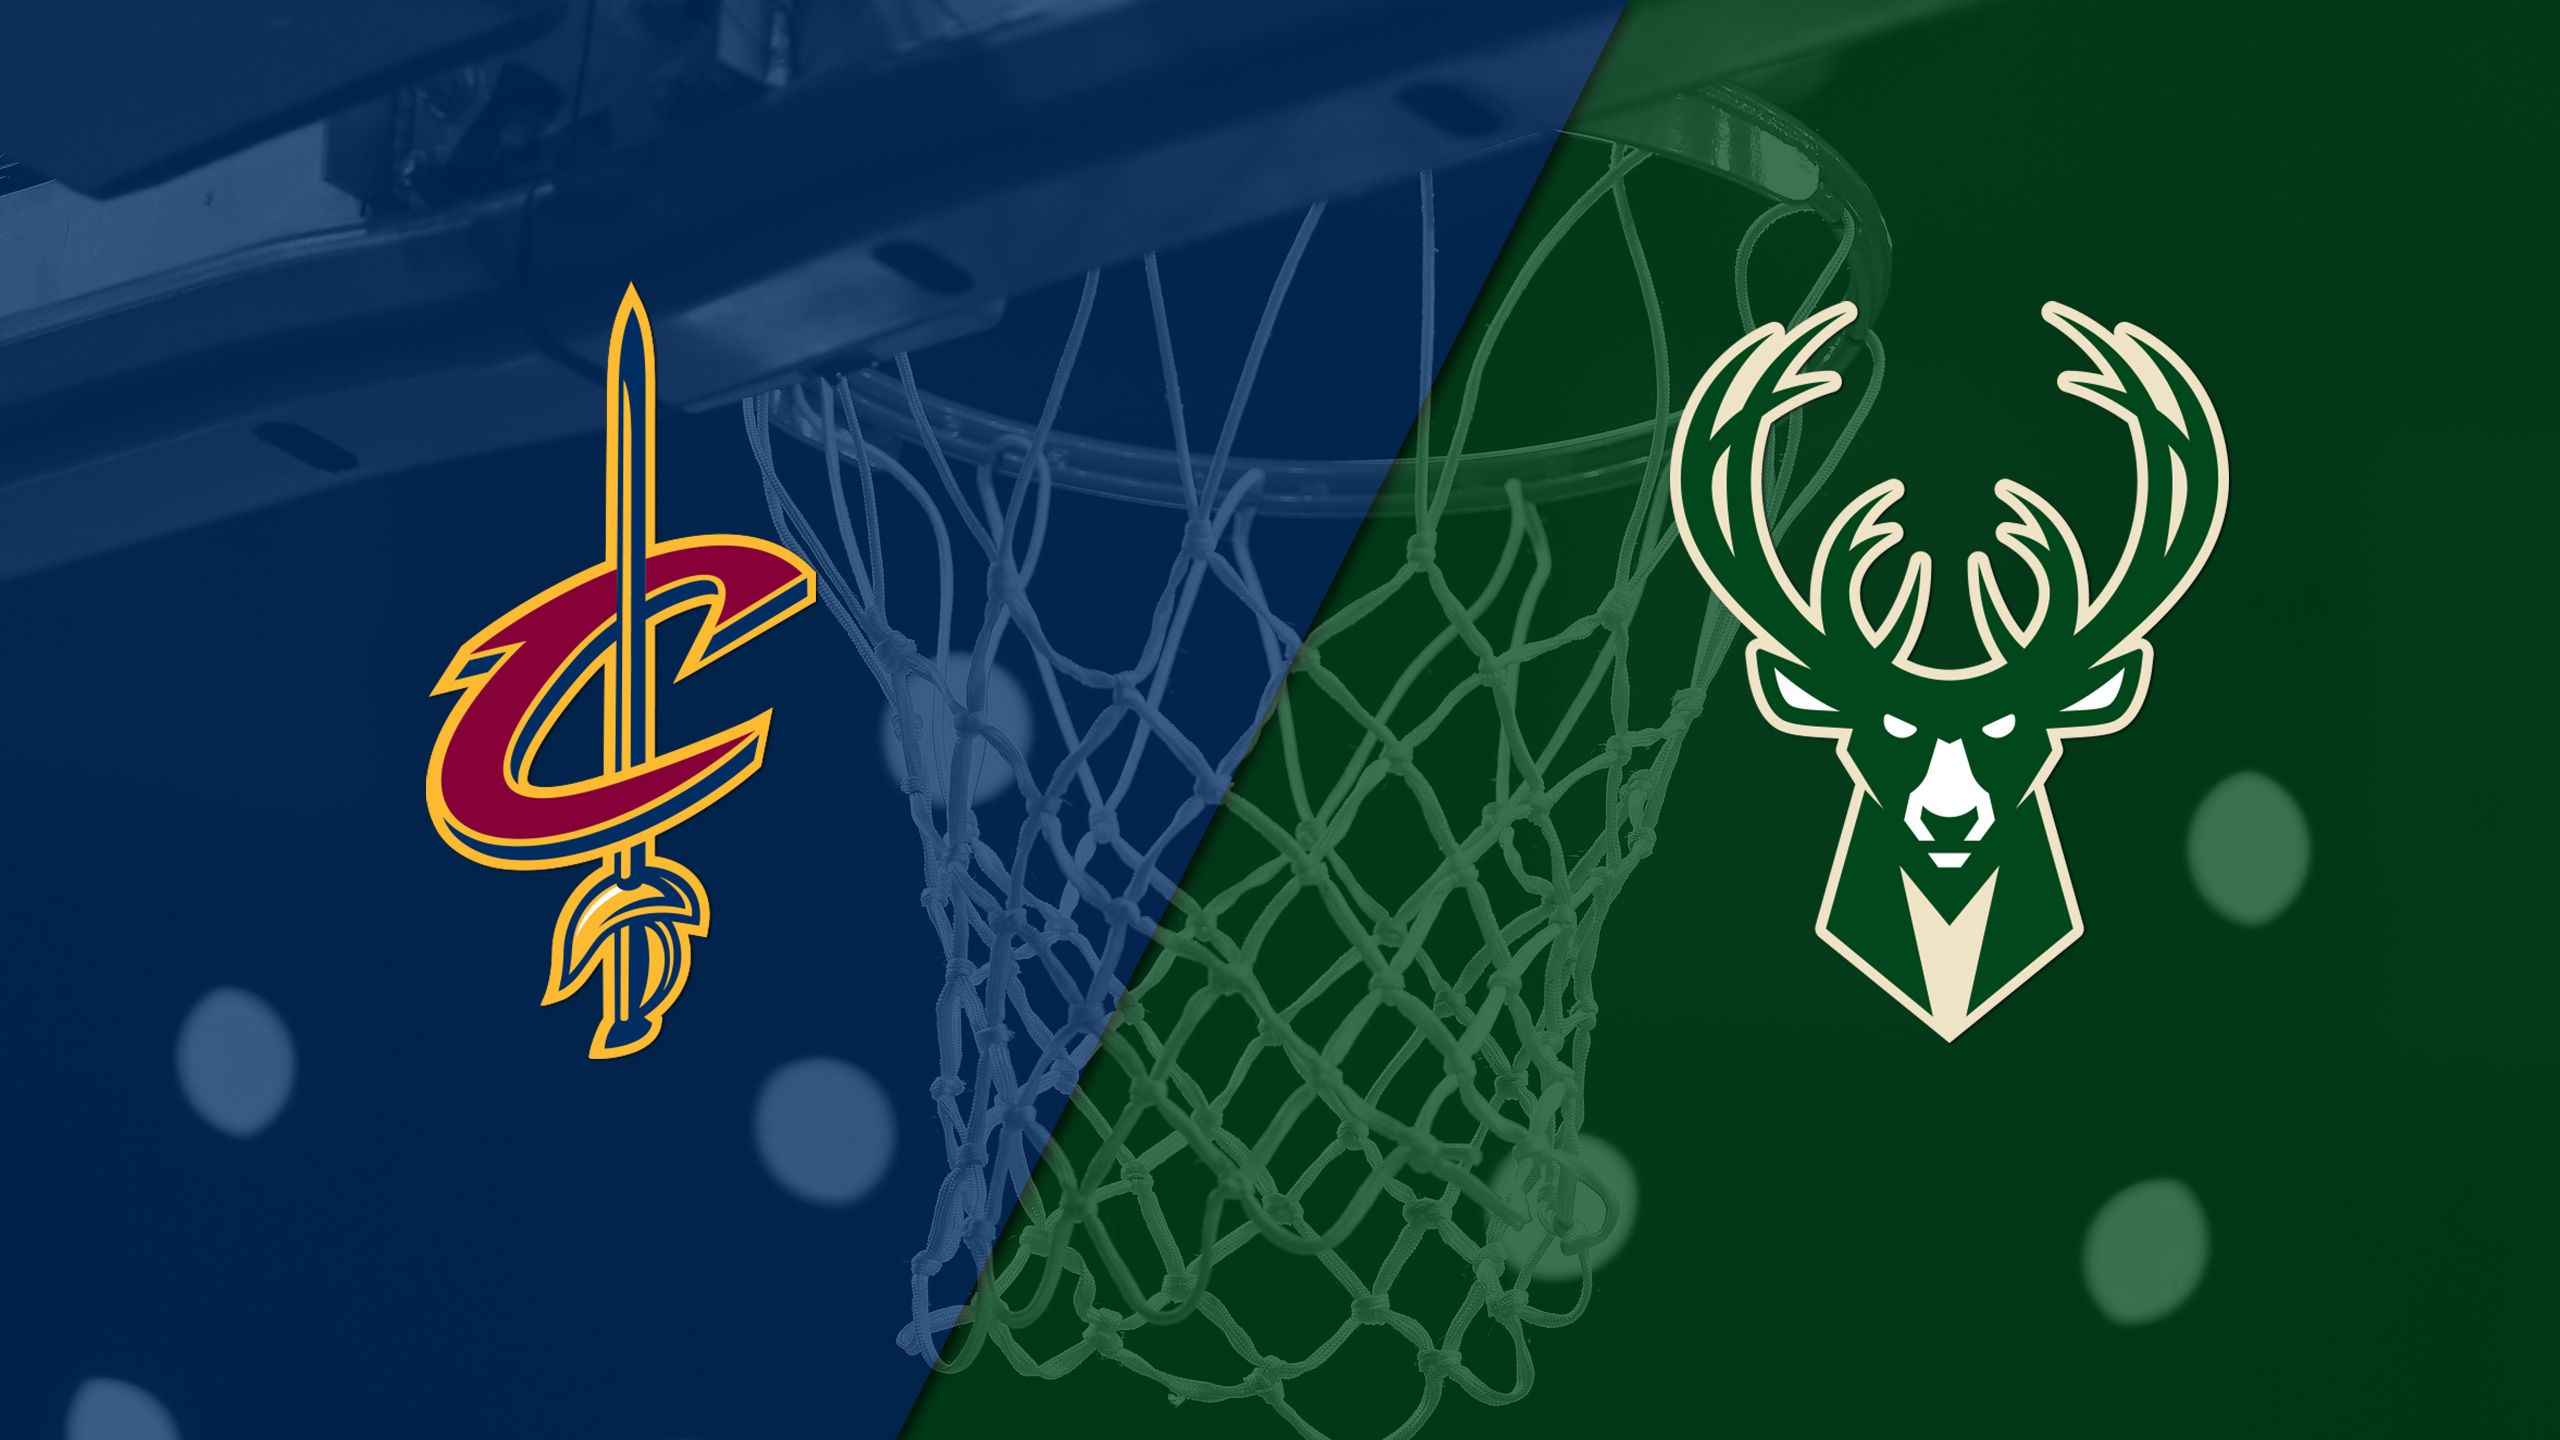 In Spanish - Cleveland Cavaliers vs. Milwaukee Bucks